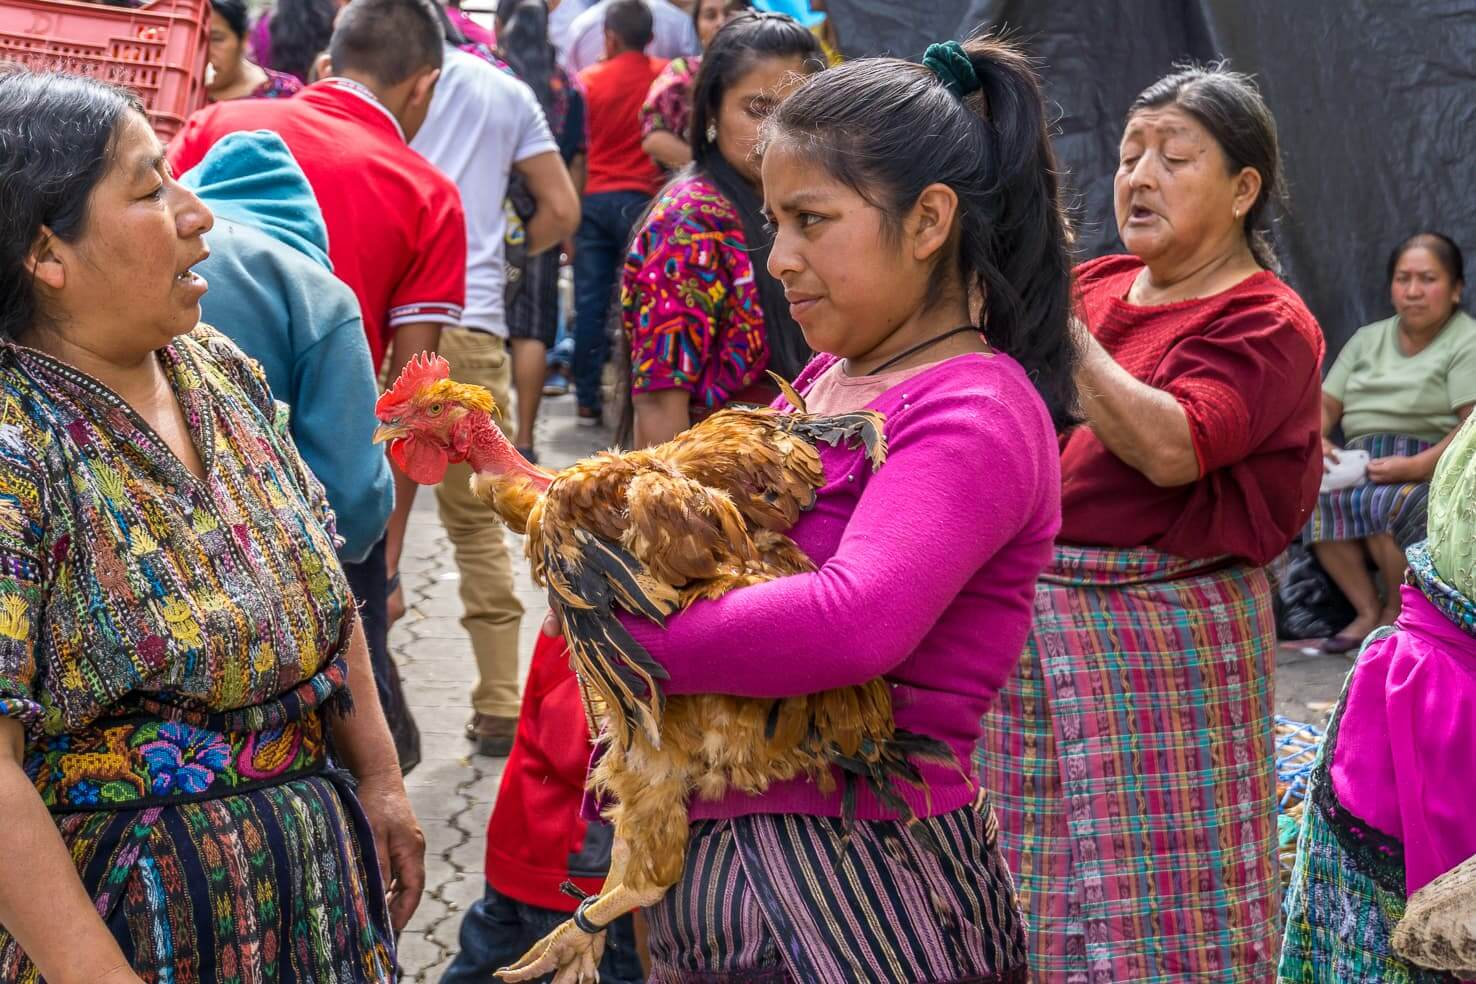 Chichicastenango - The biggest colorful market of Mayan culture